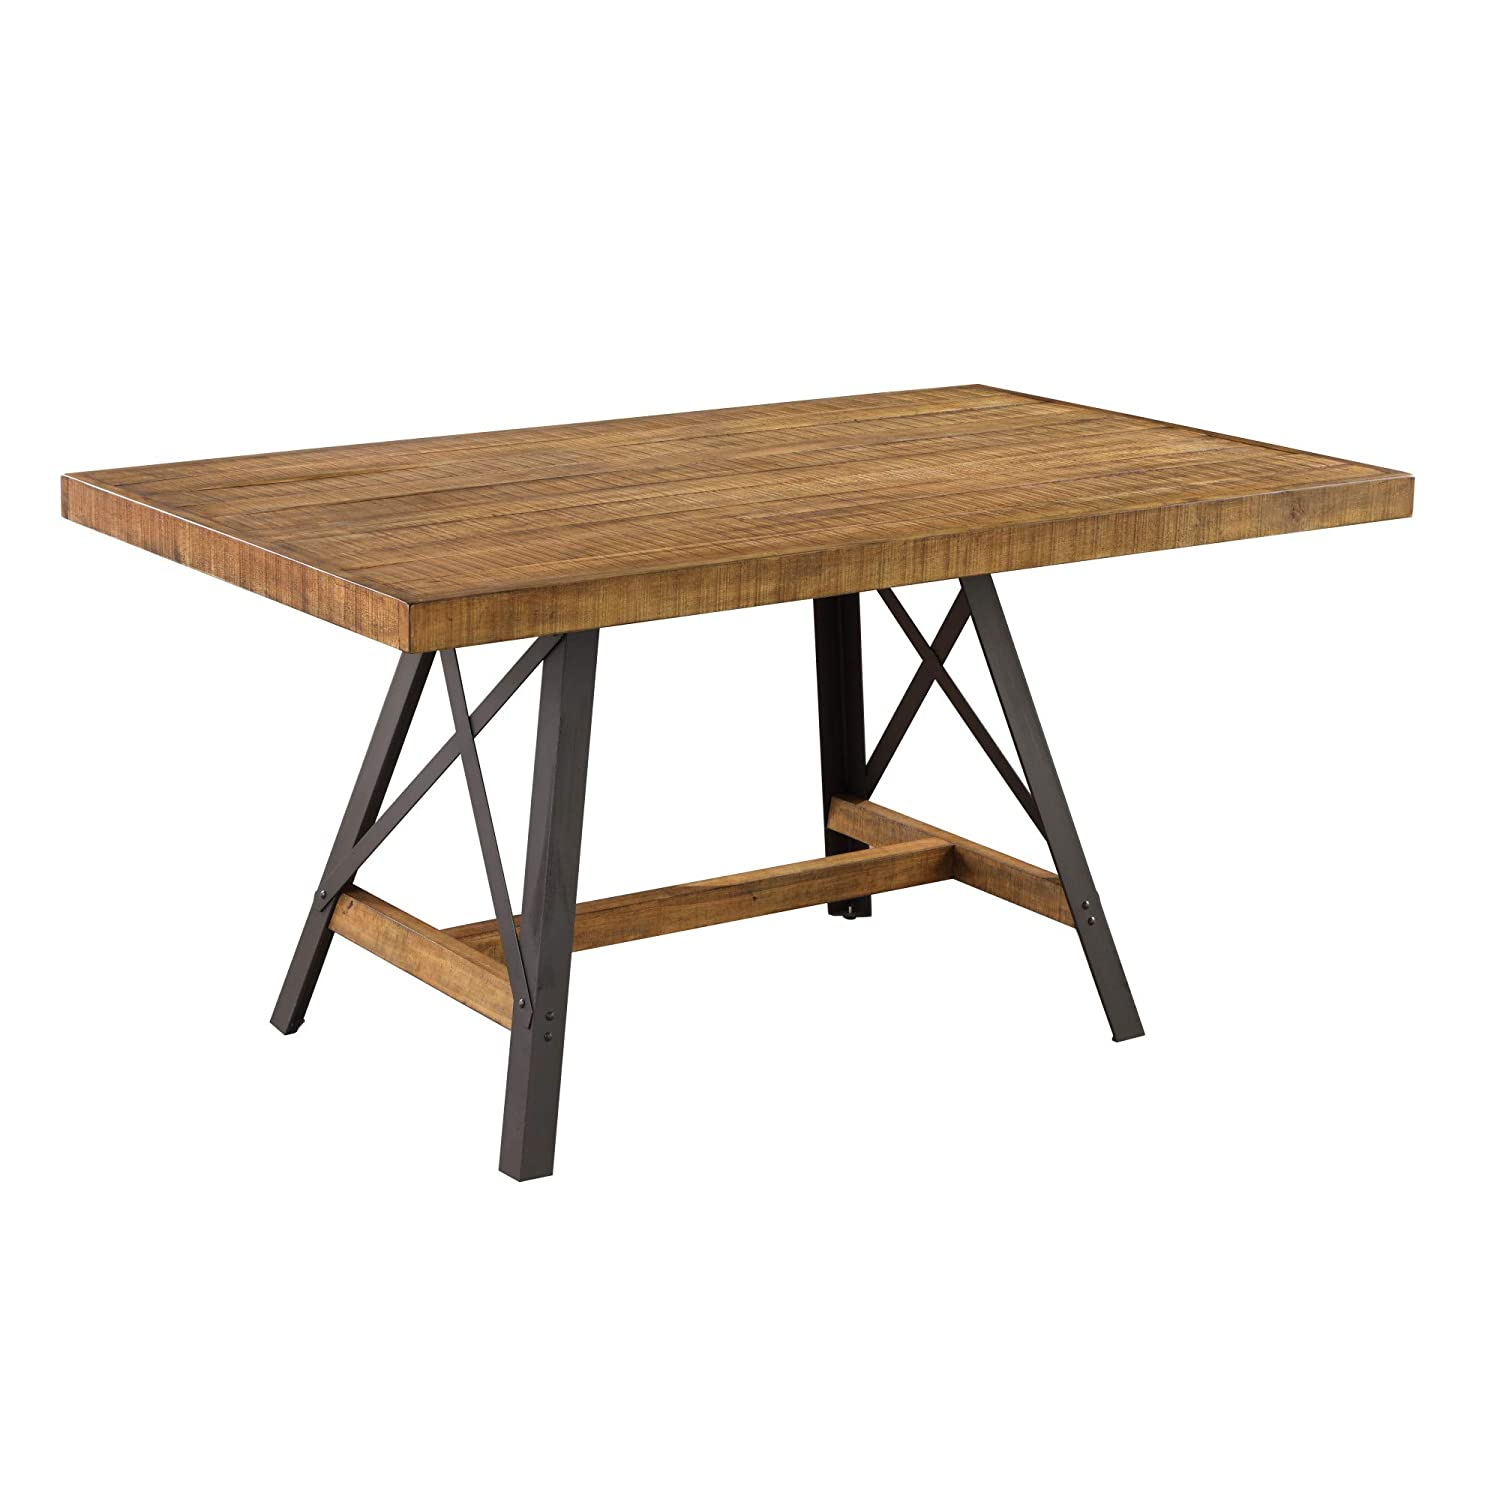 Amazon.com: Artum Hill - Mesa de comedor con base de metal y ...